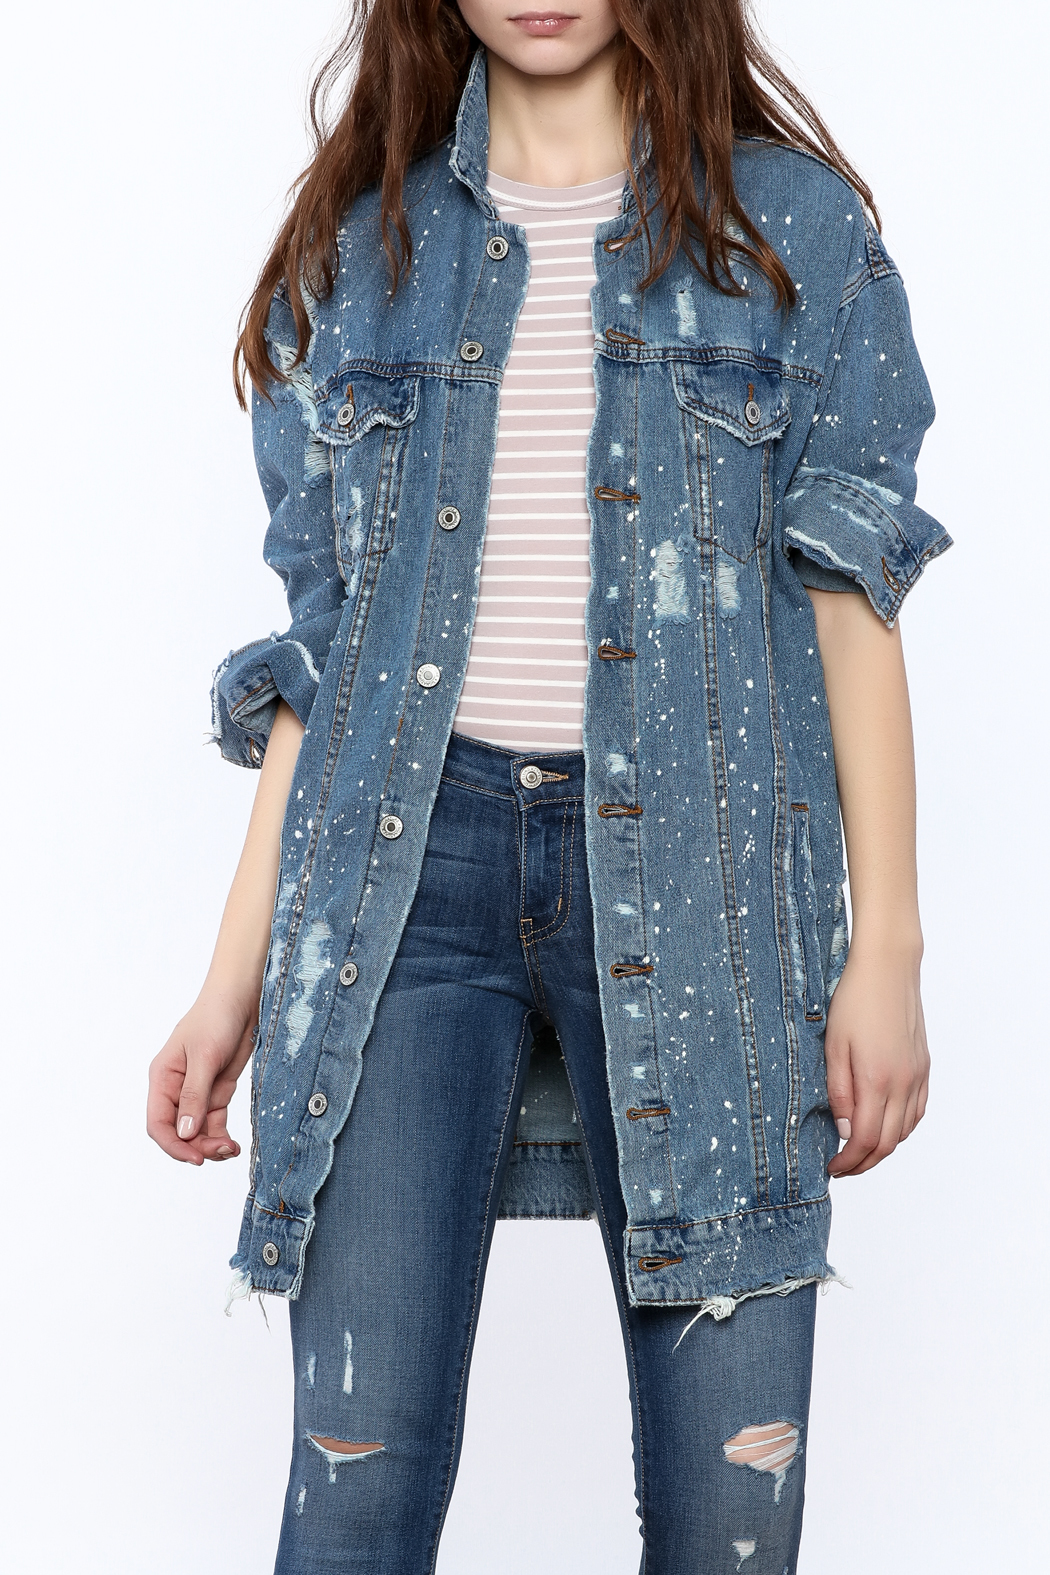 Shop for jean & denim jackets for women at loadingbassqz.cf Browse women's jean & denim jackets & vests from top brands like Topshop, Levi's, Hudson & more. Free shipping & returns.